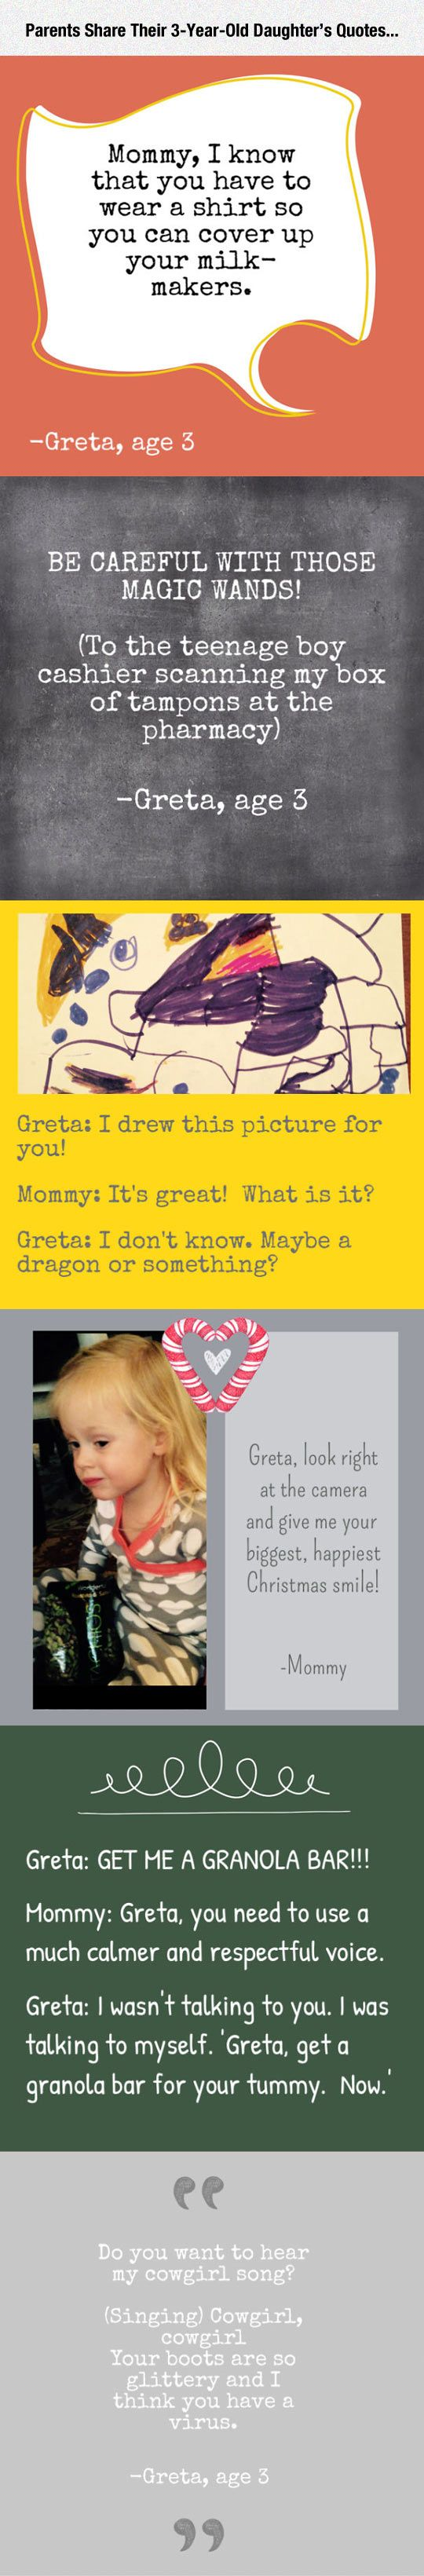 Three-Year-Old Daughter's Quotes. Kids are awesome; I,m gonna start writing some of Brooke's quotes down.